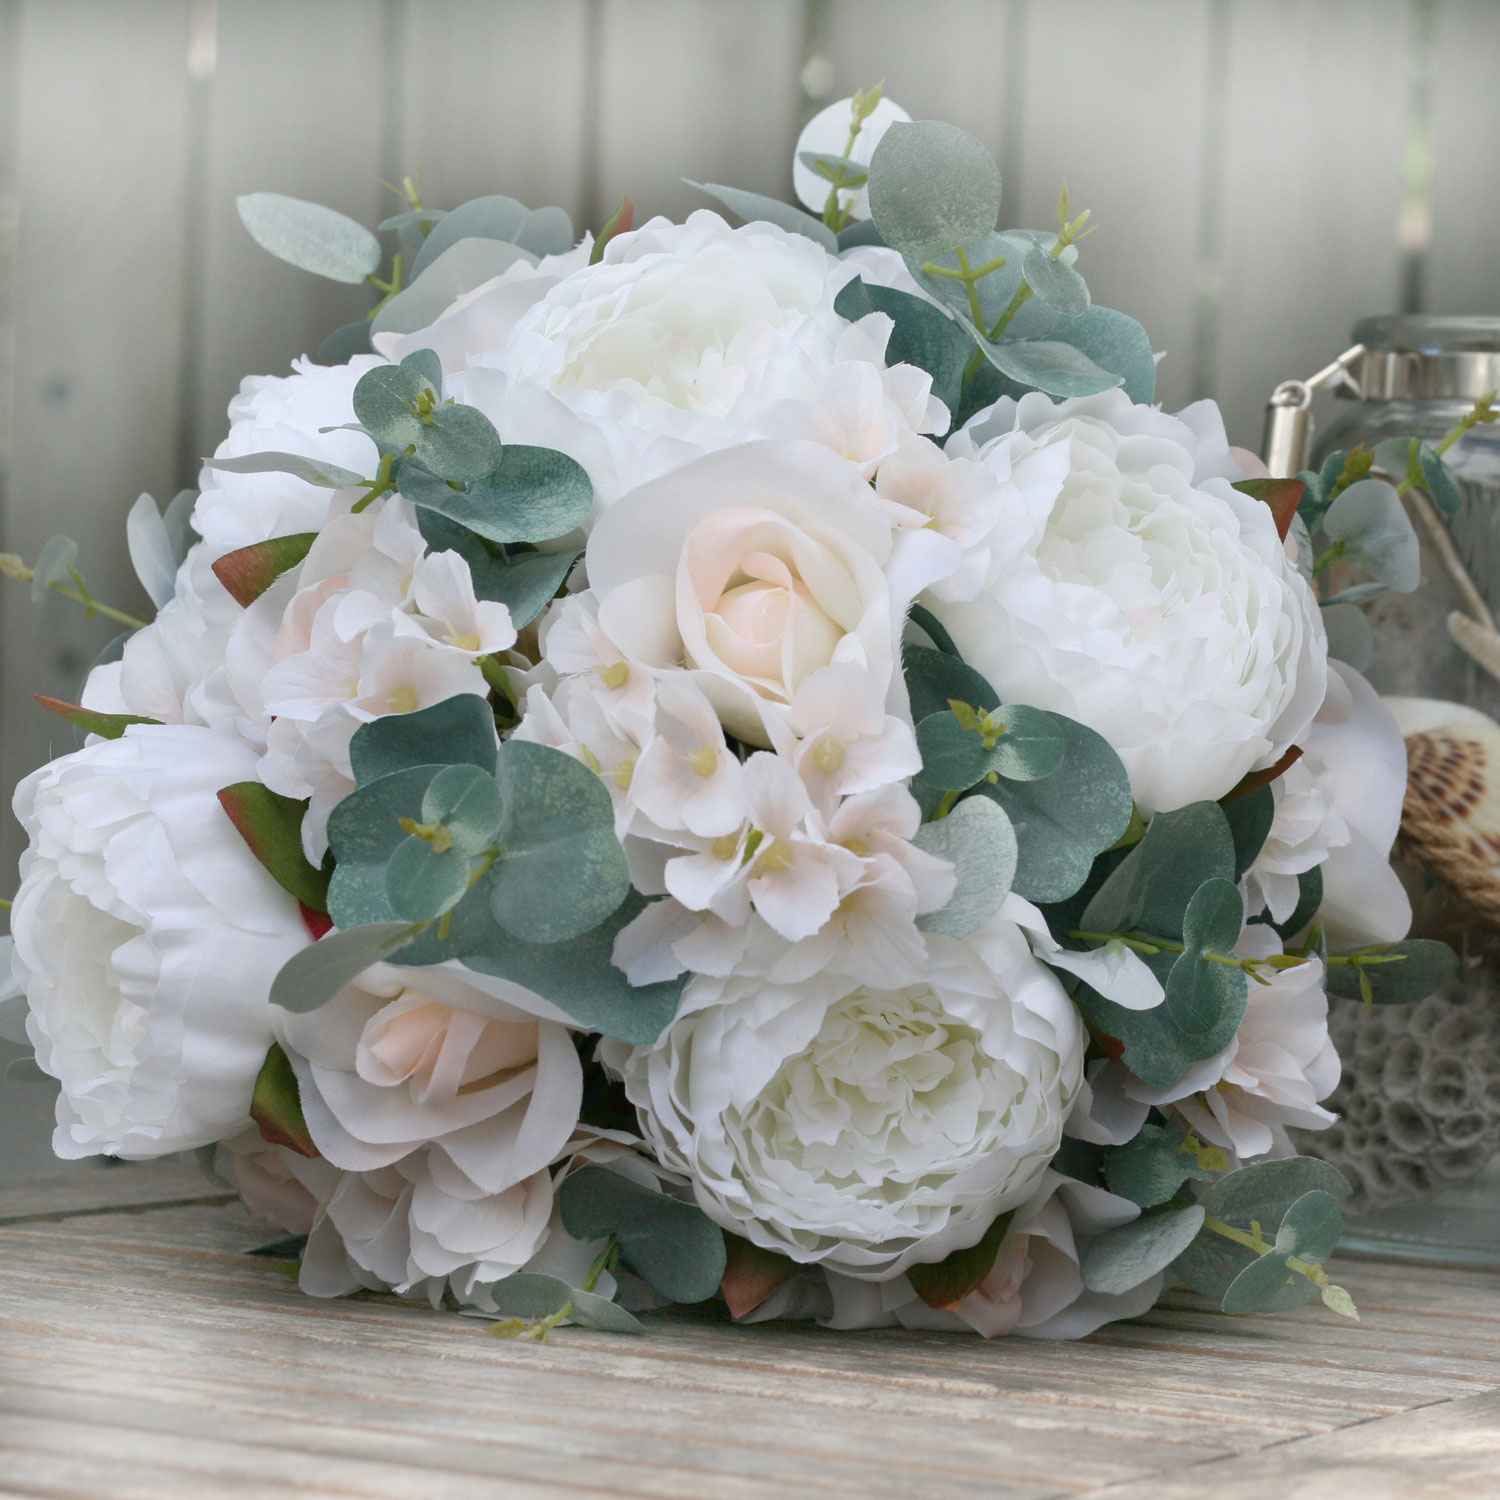 ivory-blush-large-silk-wedding-bouquets-thebridesbouquet.jpg